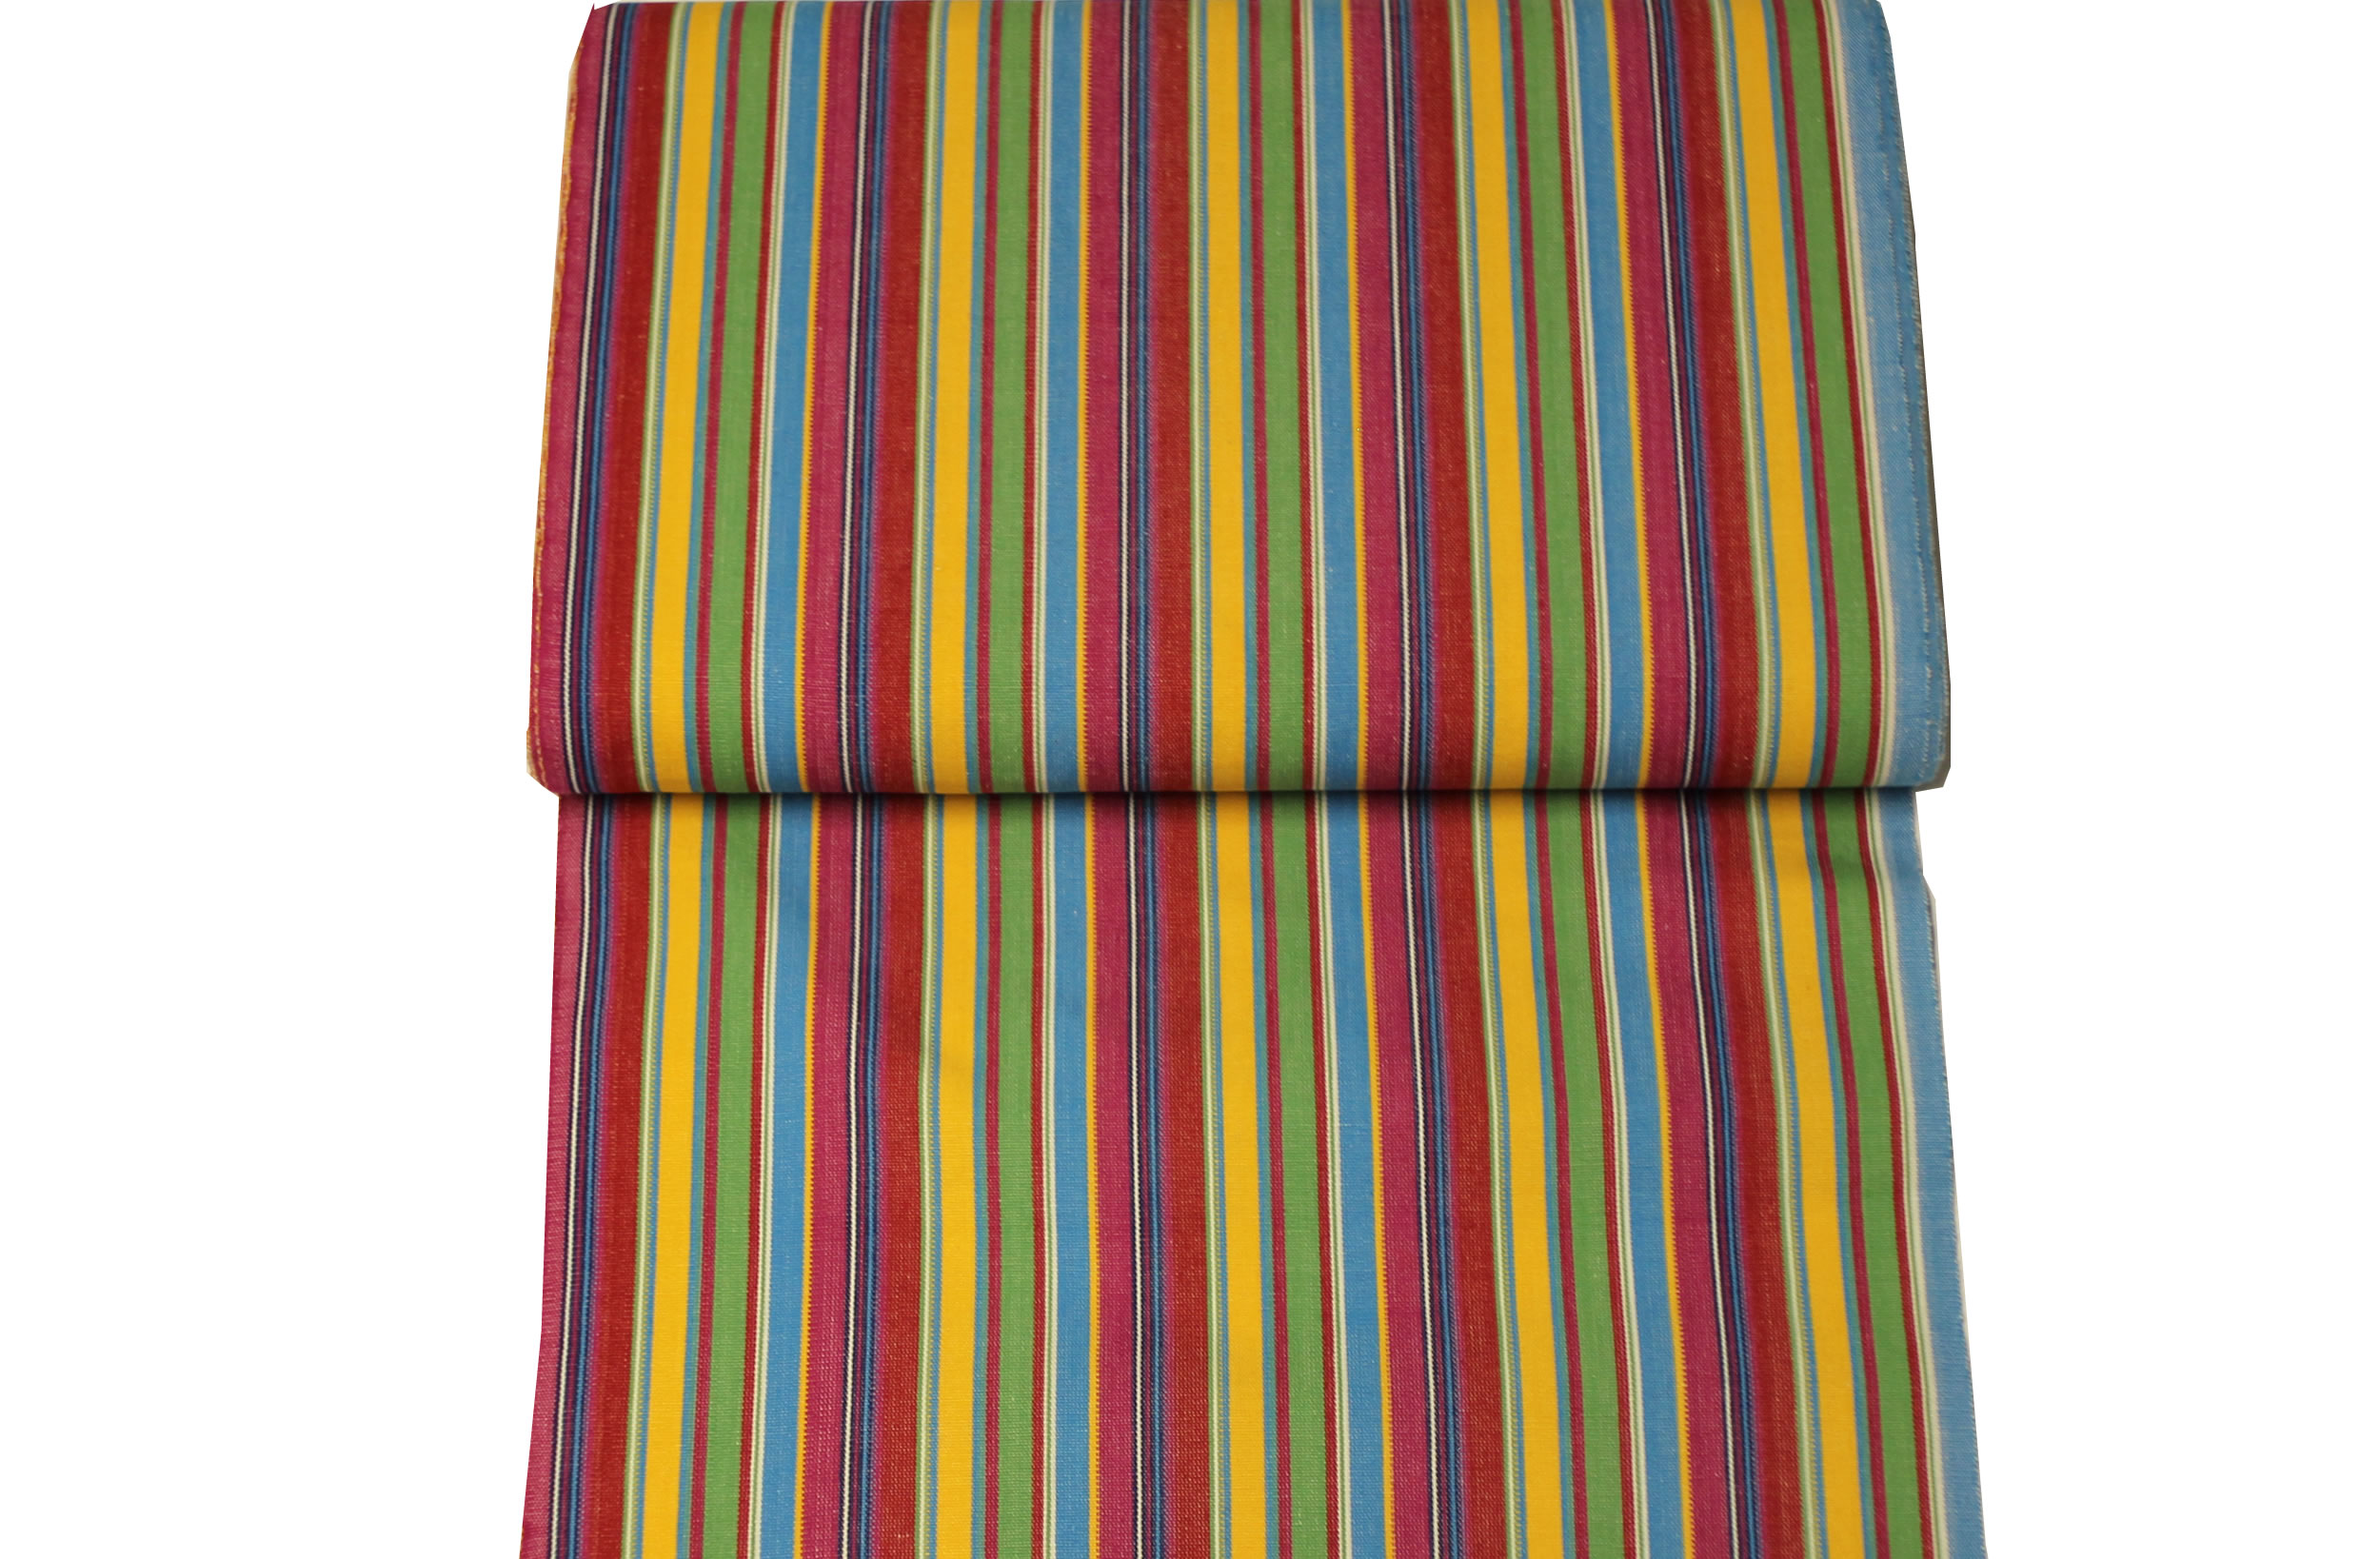 Pink Green Yellow Stripe Deck Chair Canvas Fabric